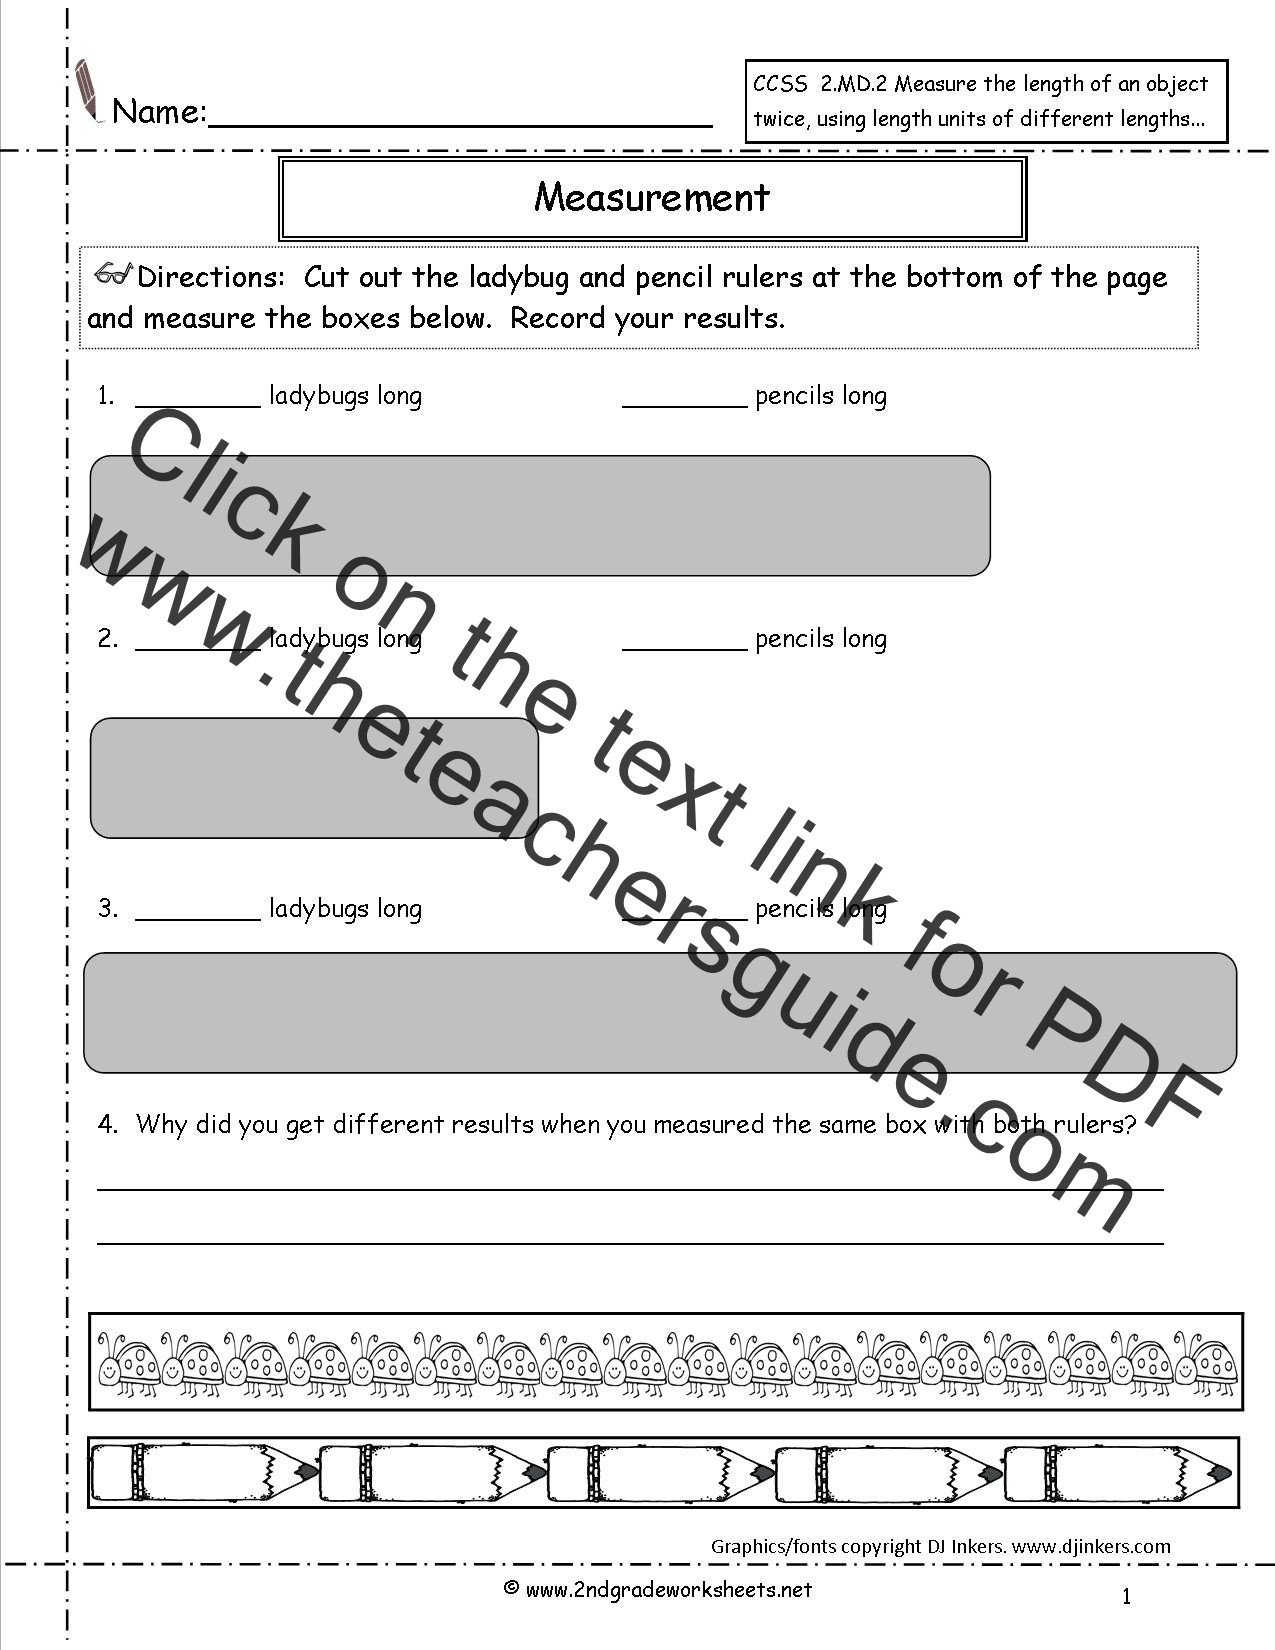 2nd Grade Measurement Worksheets Ccss 2 Md 2 Worksheets Measuring and Estimating Lengths